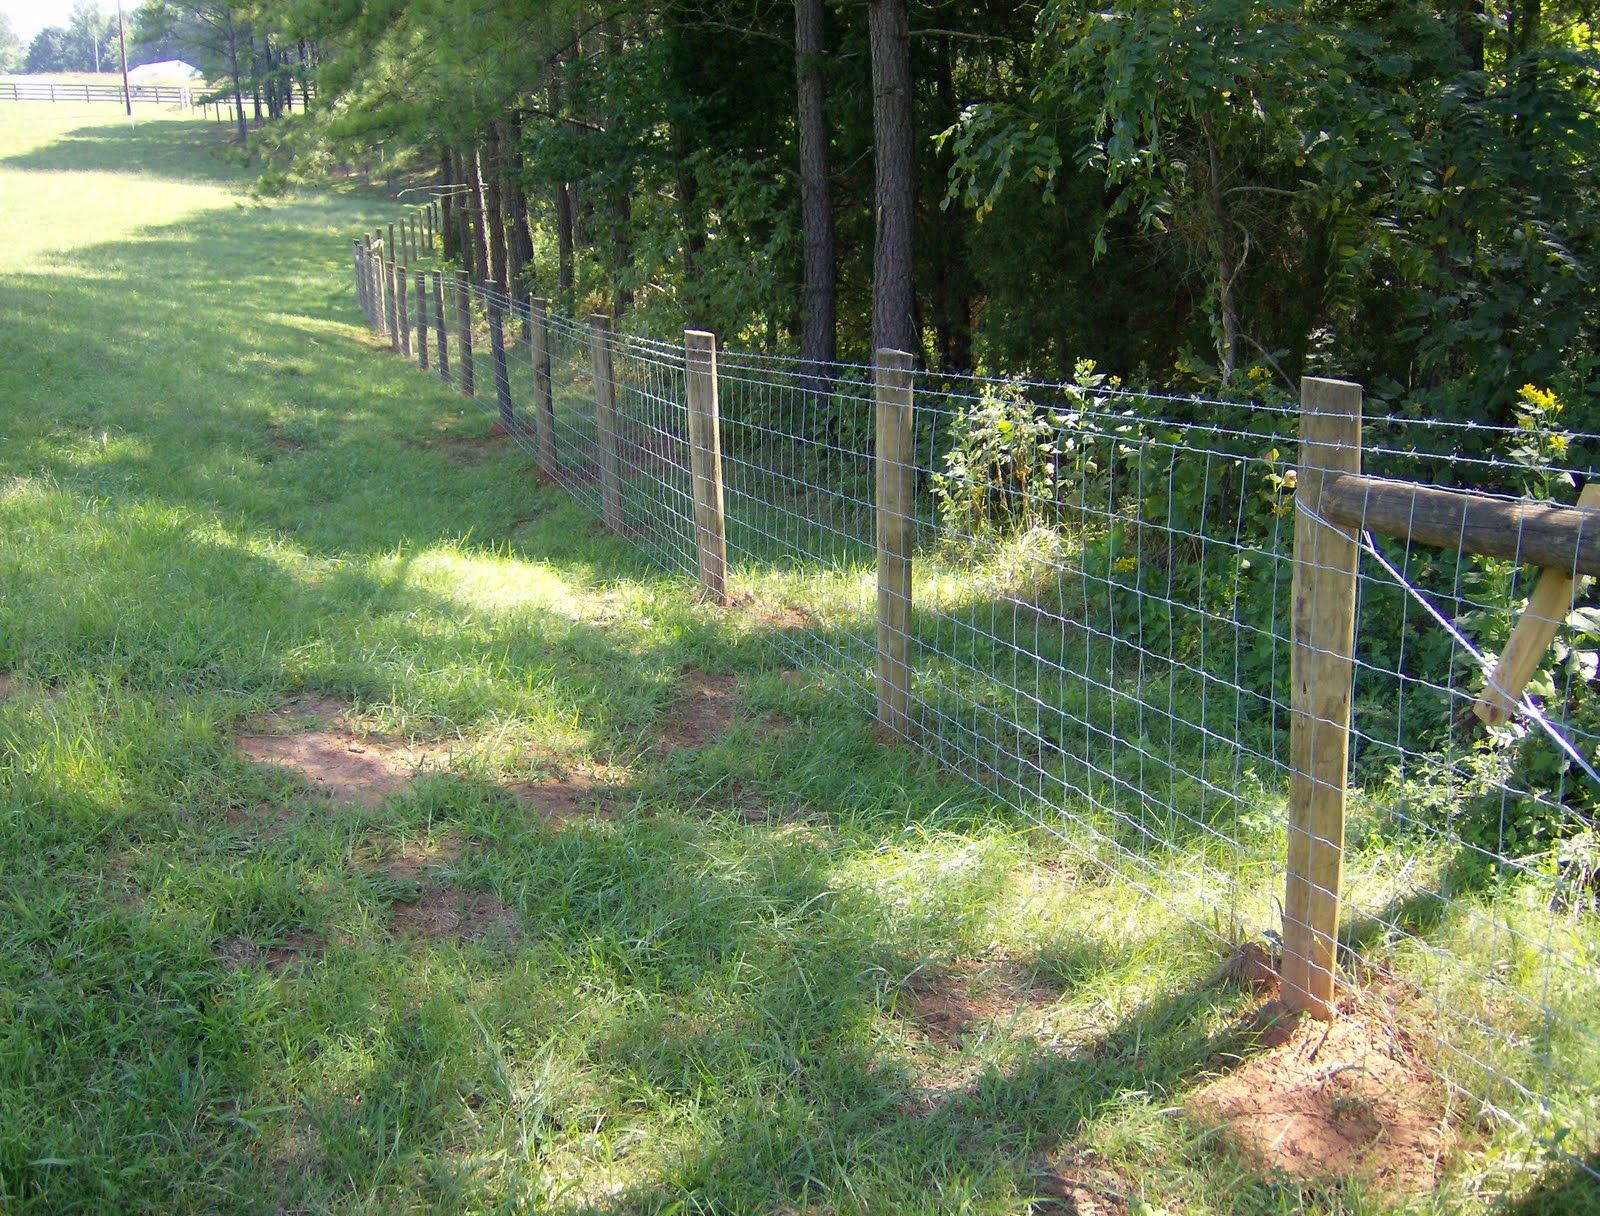 wire farm fence. Farm Fence | Range Of Farm, Ranch And Game Fencing. We Sell Hinge Knot Wire